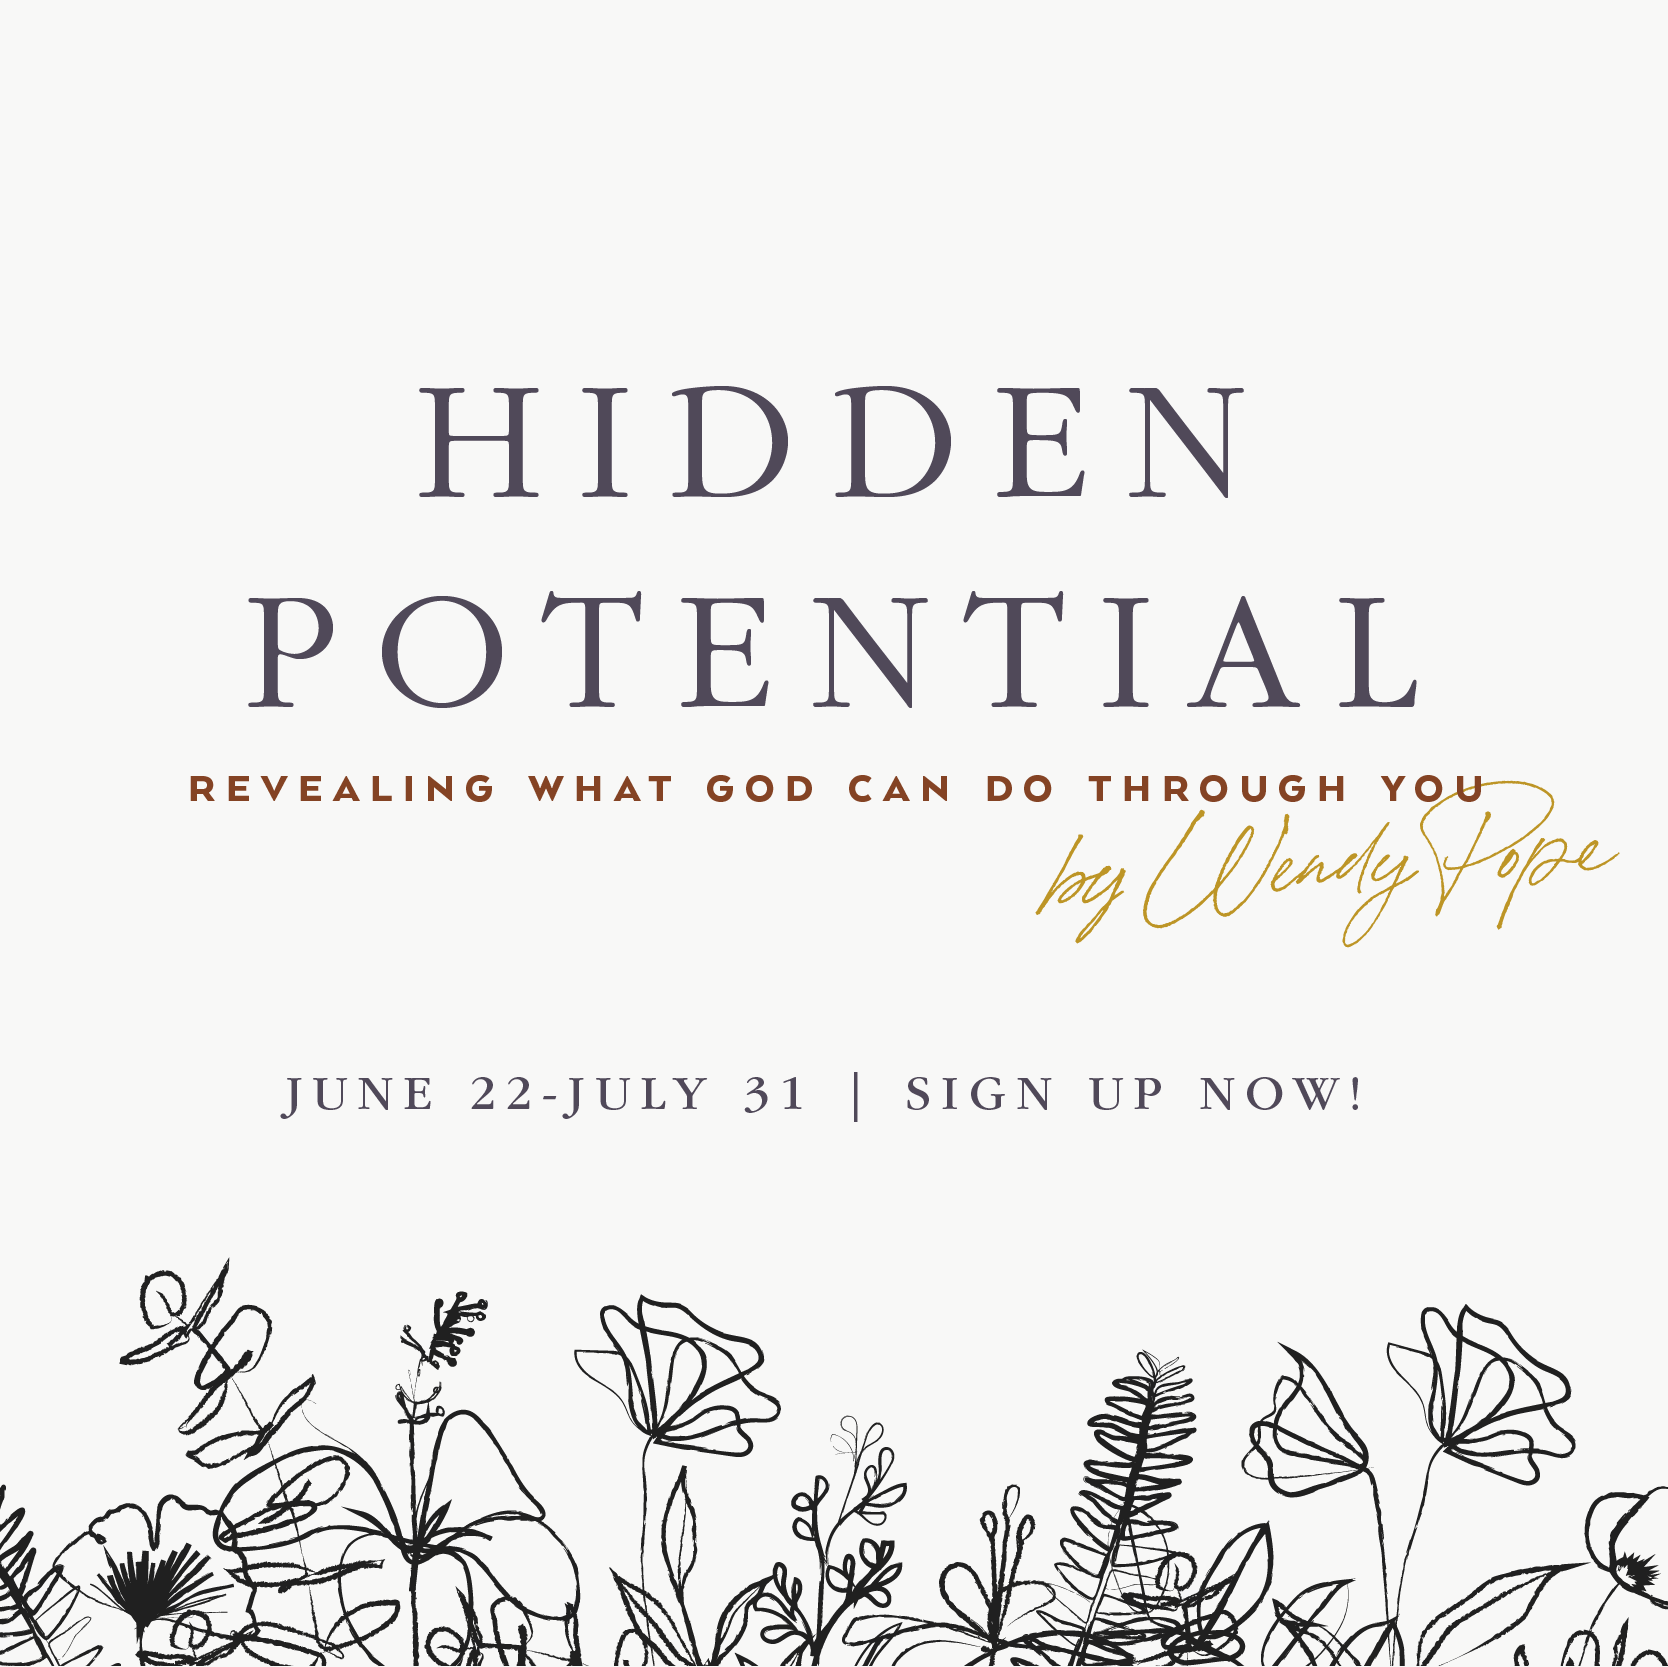 """The next Proverbs 31 Online Bible study is """"Hidden Potential"""" by Wendy Pope! Study starts June 22. Learn more and sign up here --> https://www.proverbs31.org/study/online-bible-studies  #HiddenPotential #P31OBS"""